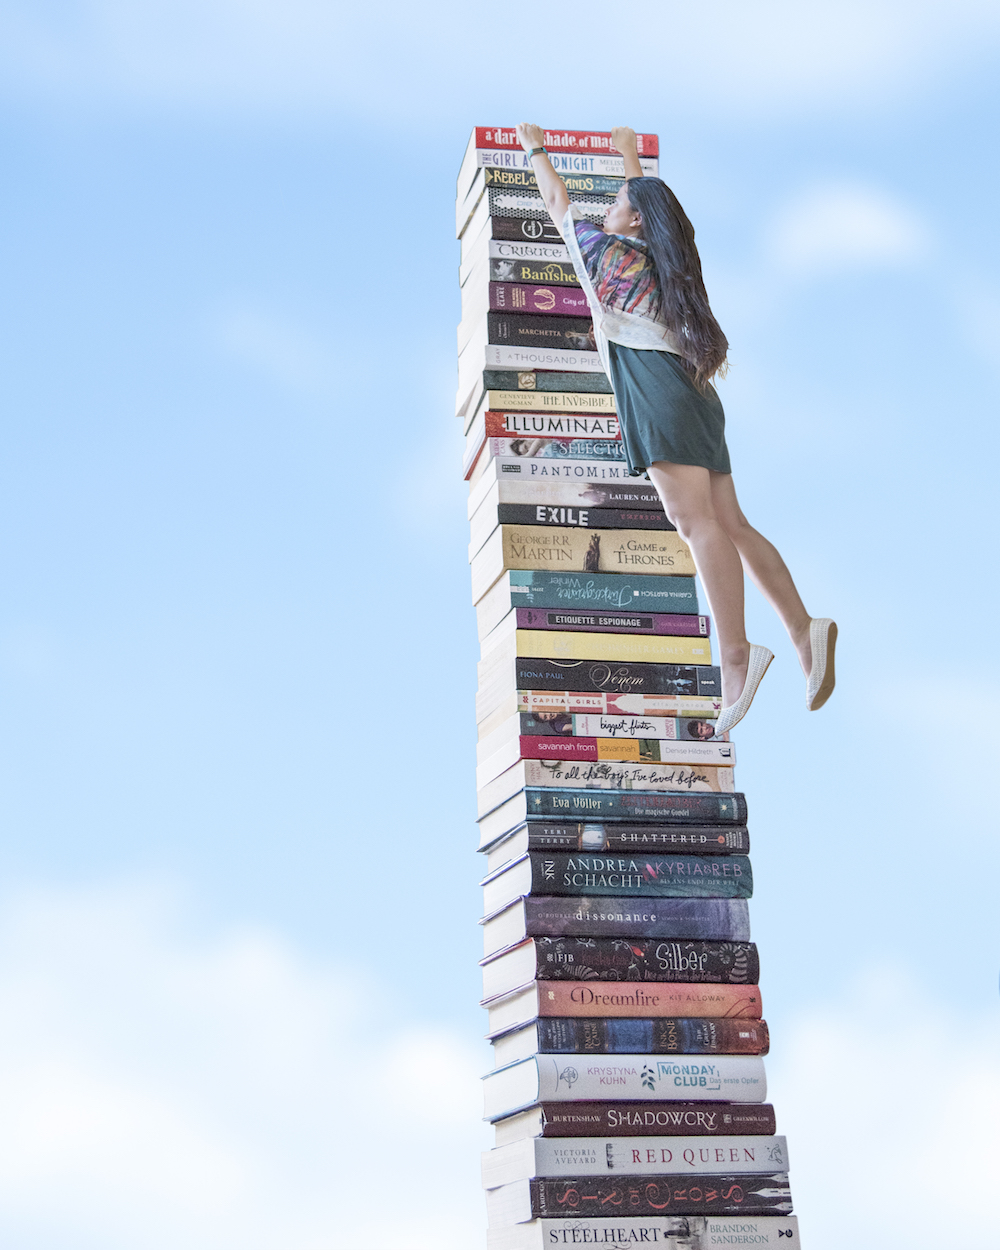 Bookish Scene: New Beginnings – Creative photography, hanging onto a tower of books